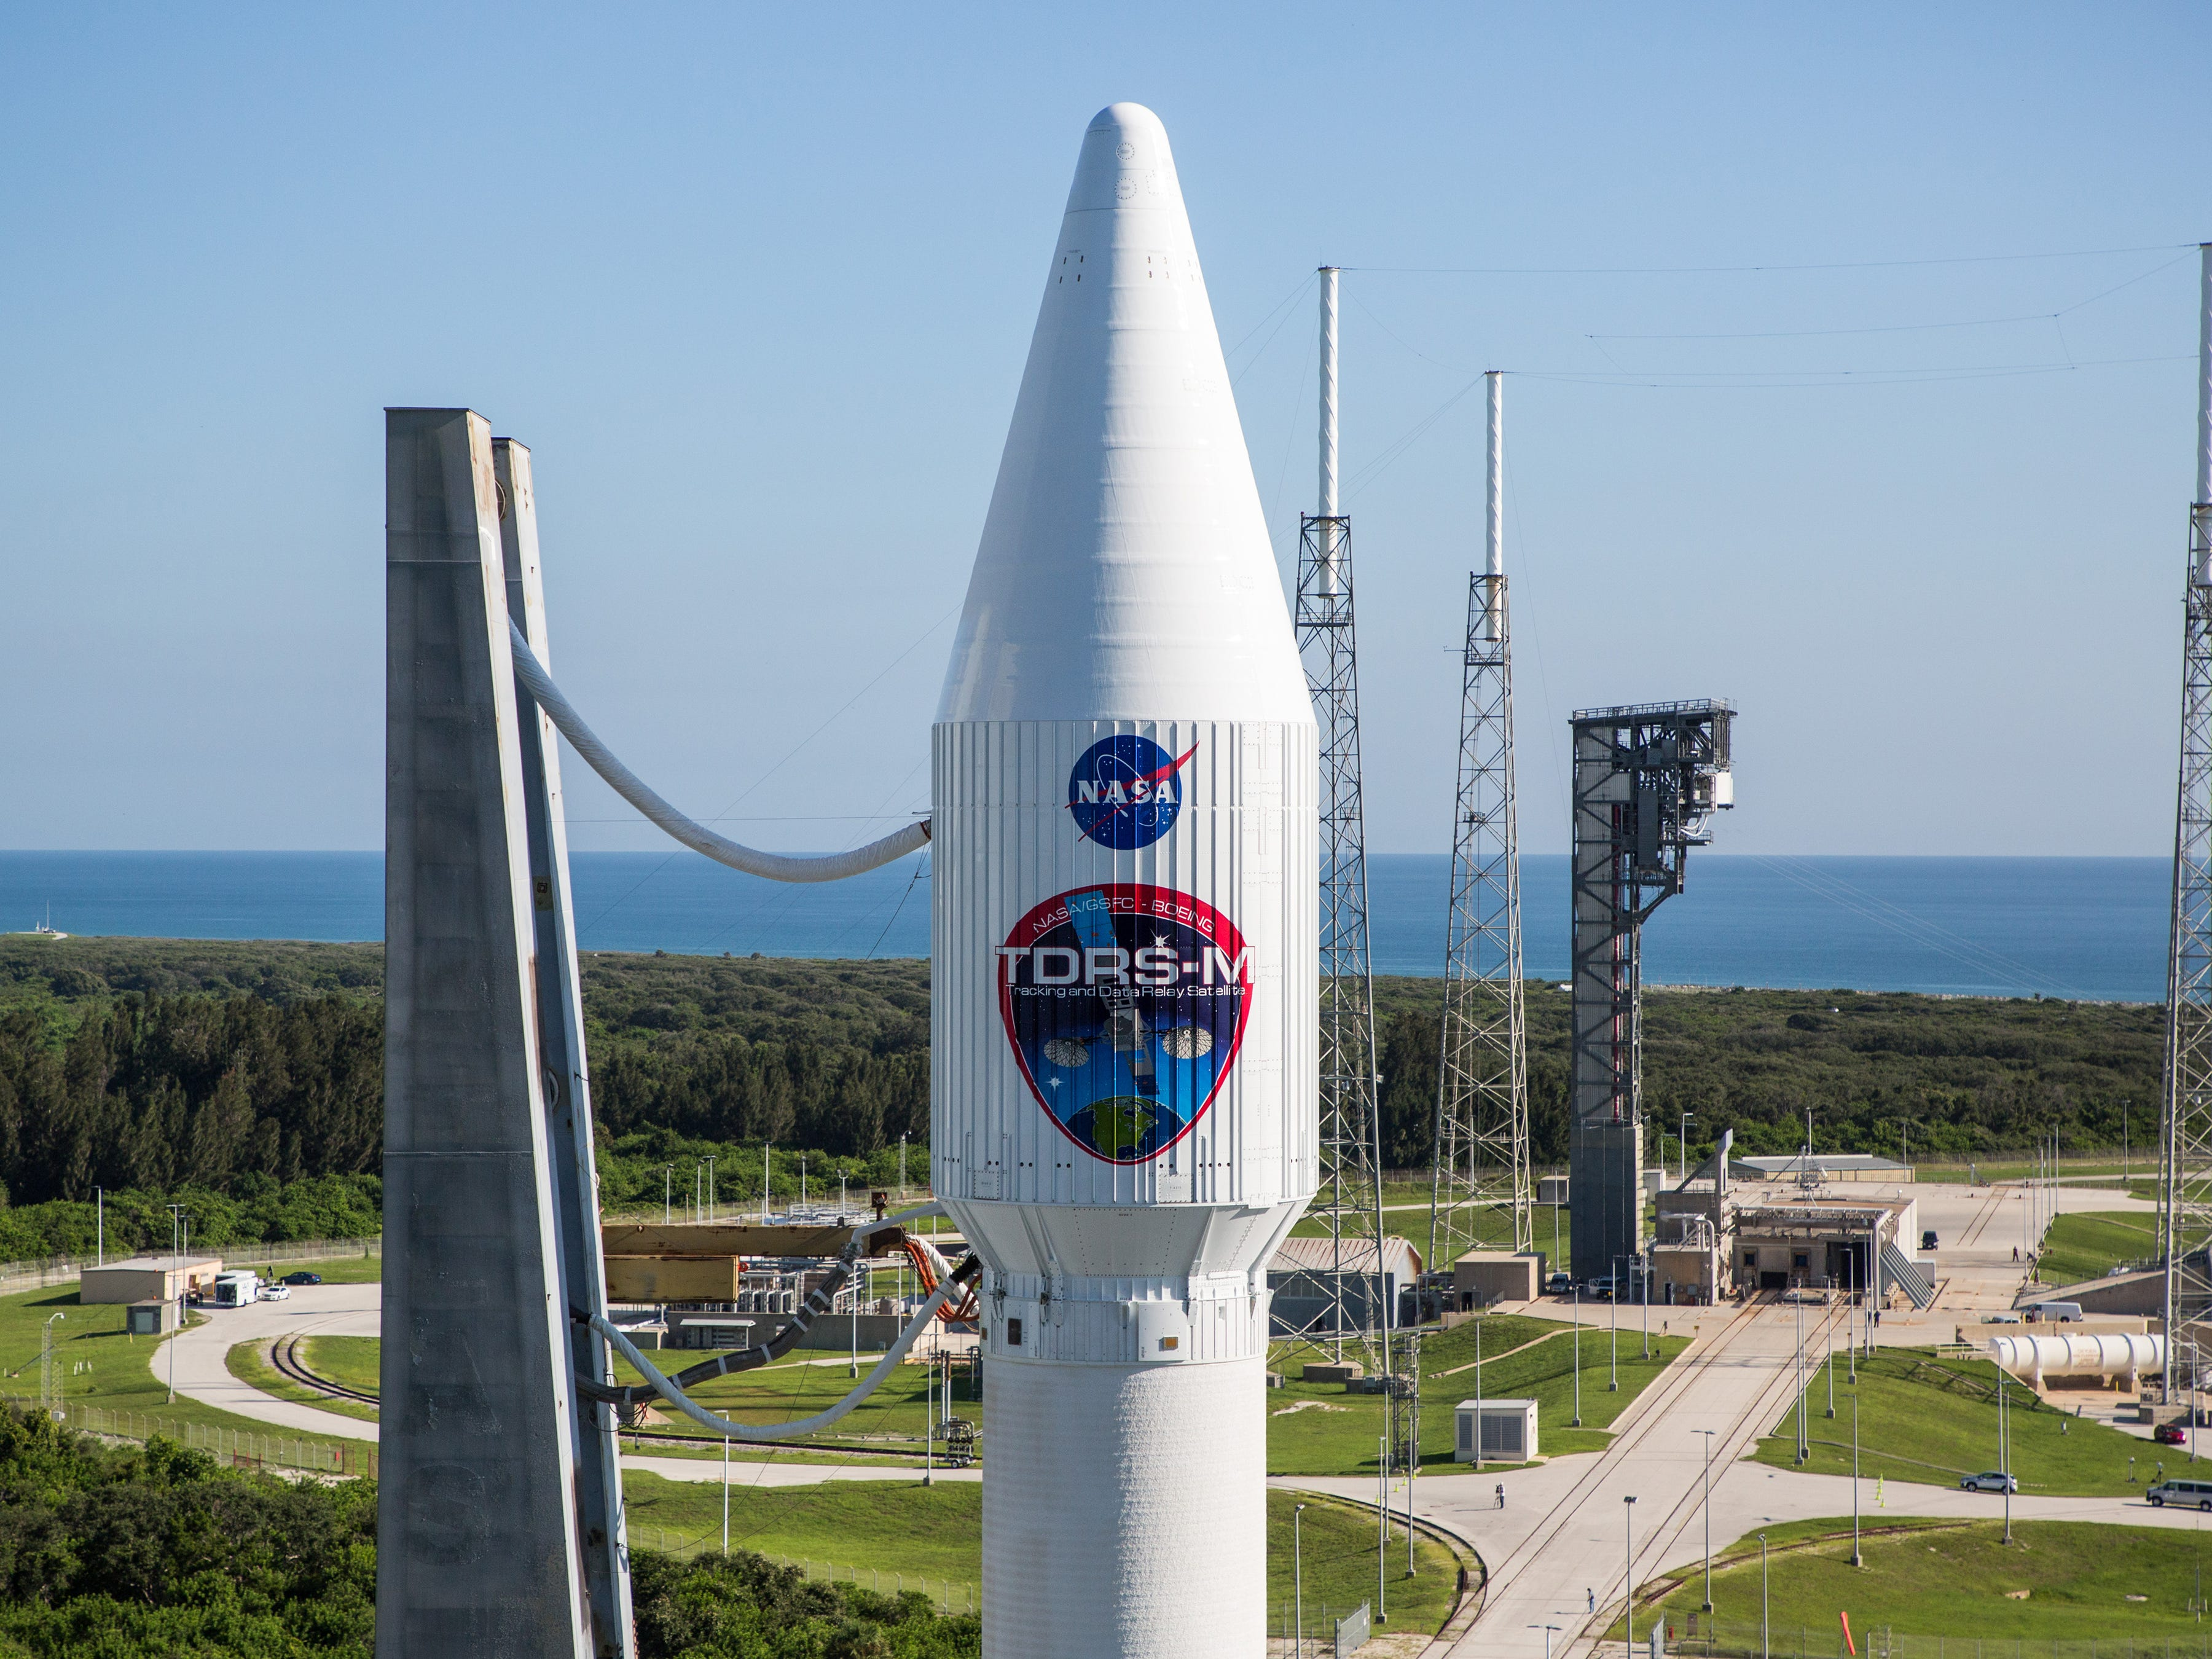 636385825738690125-av-tdrsm-r7816201745339PM63 Atlas V rocket launches from Cape Canaveral with NASA satellite